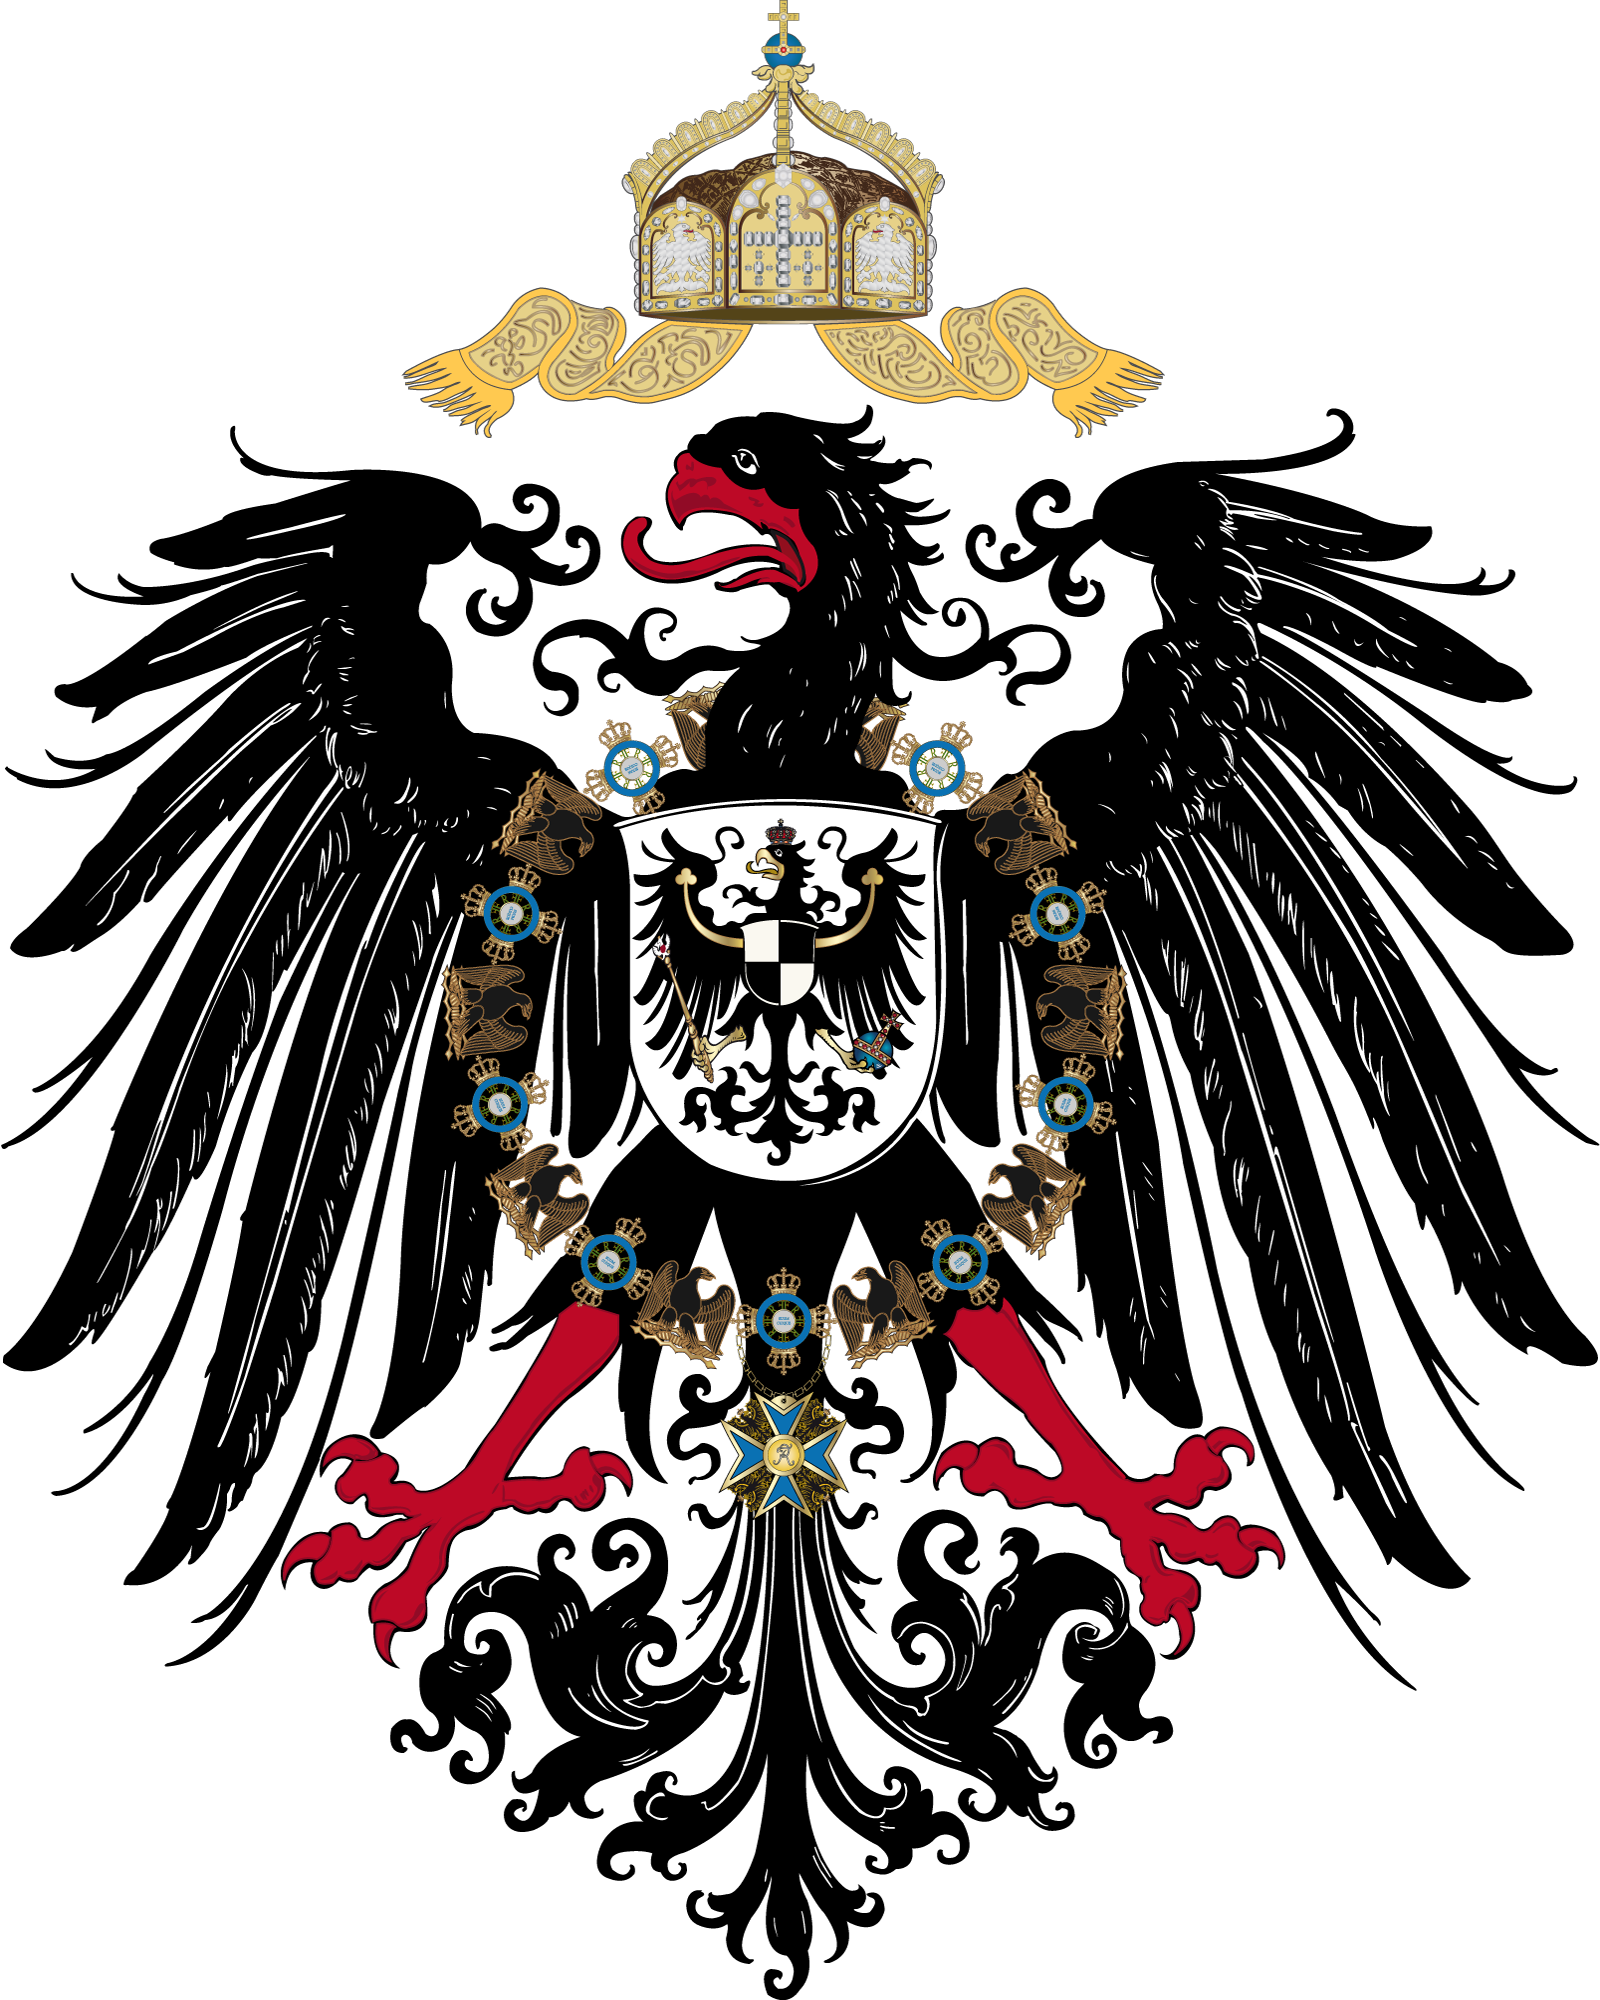 The Coat of Arms of Imperial Germany